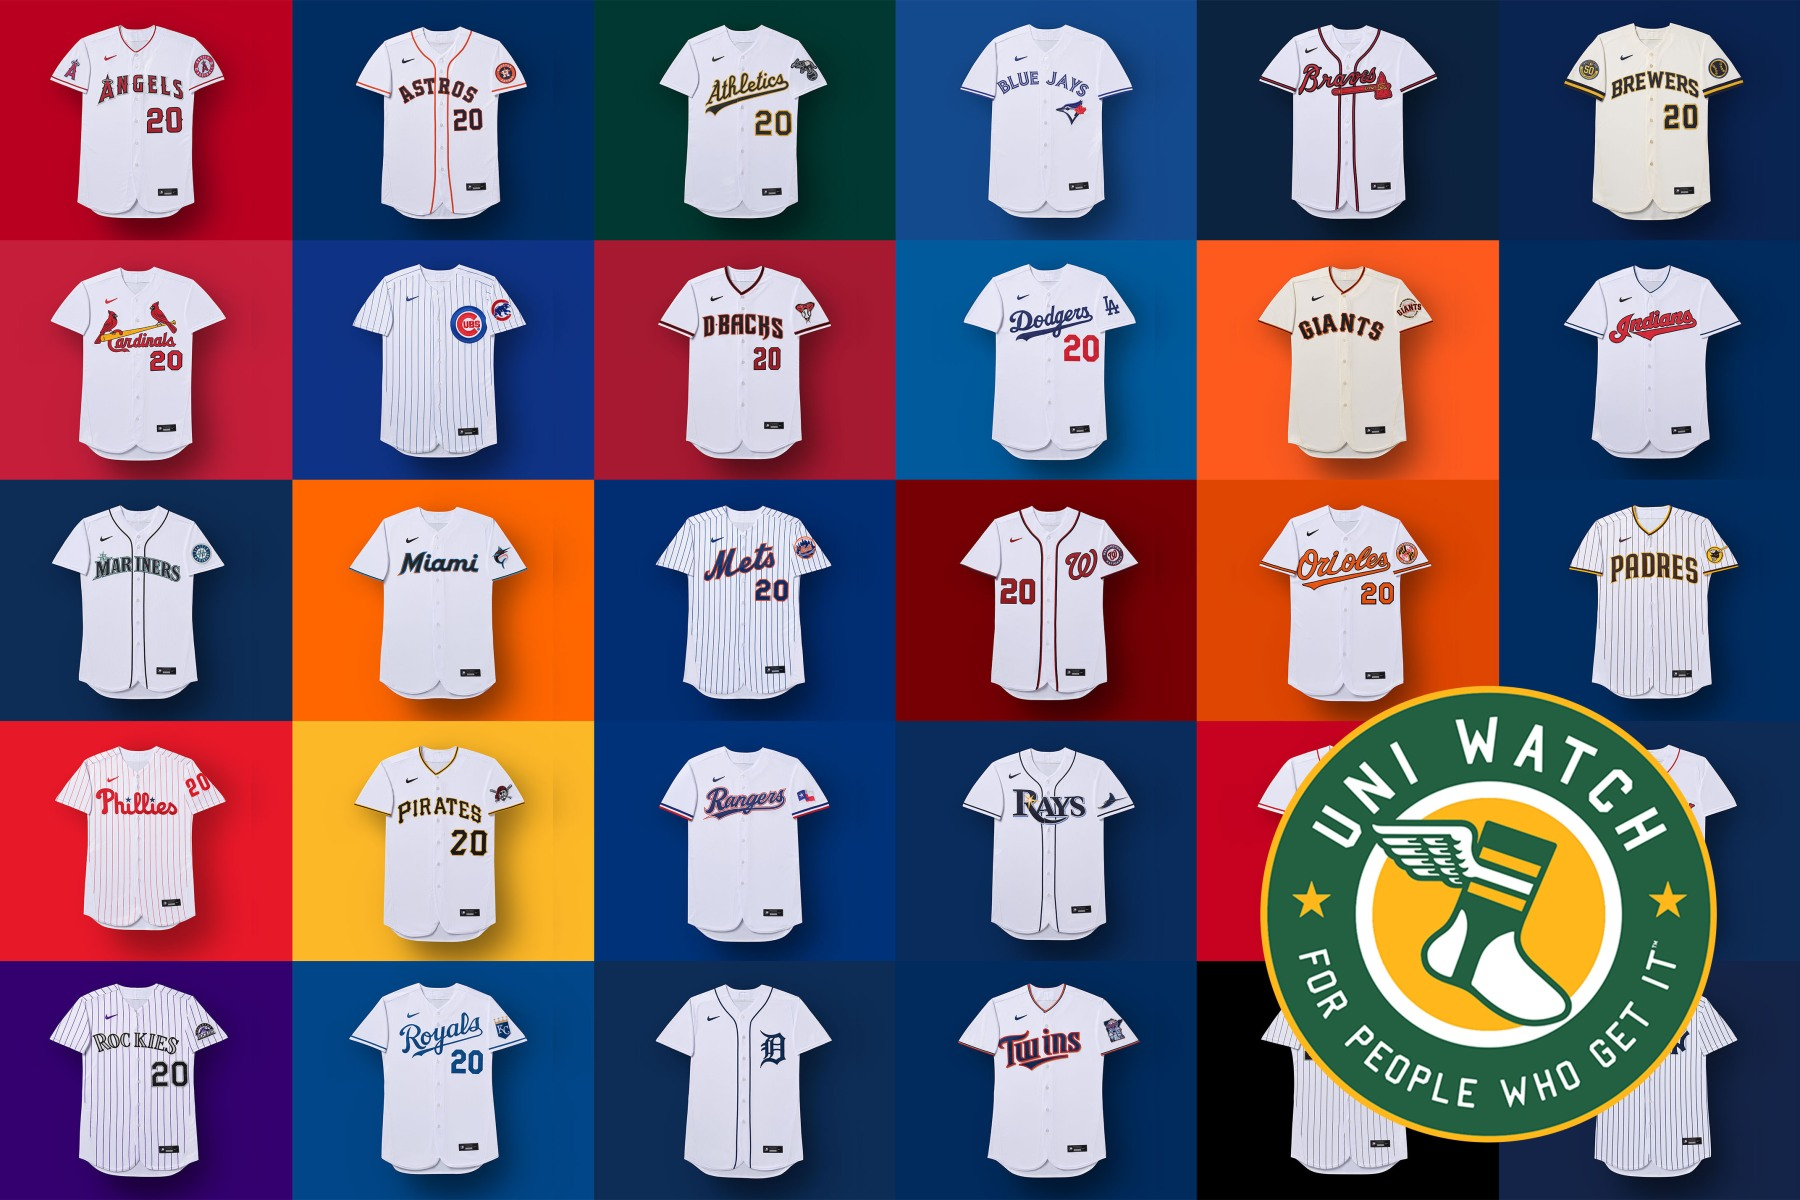 2020 uni watch mlb season preview